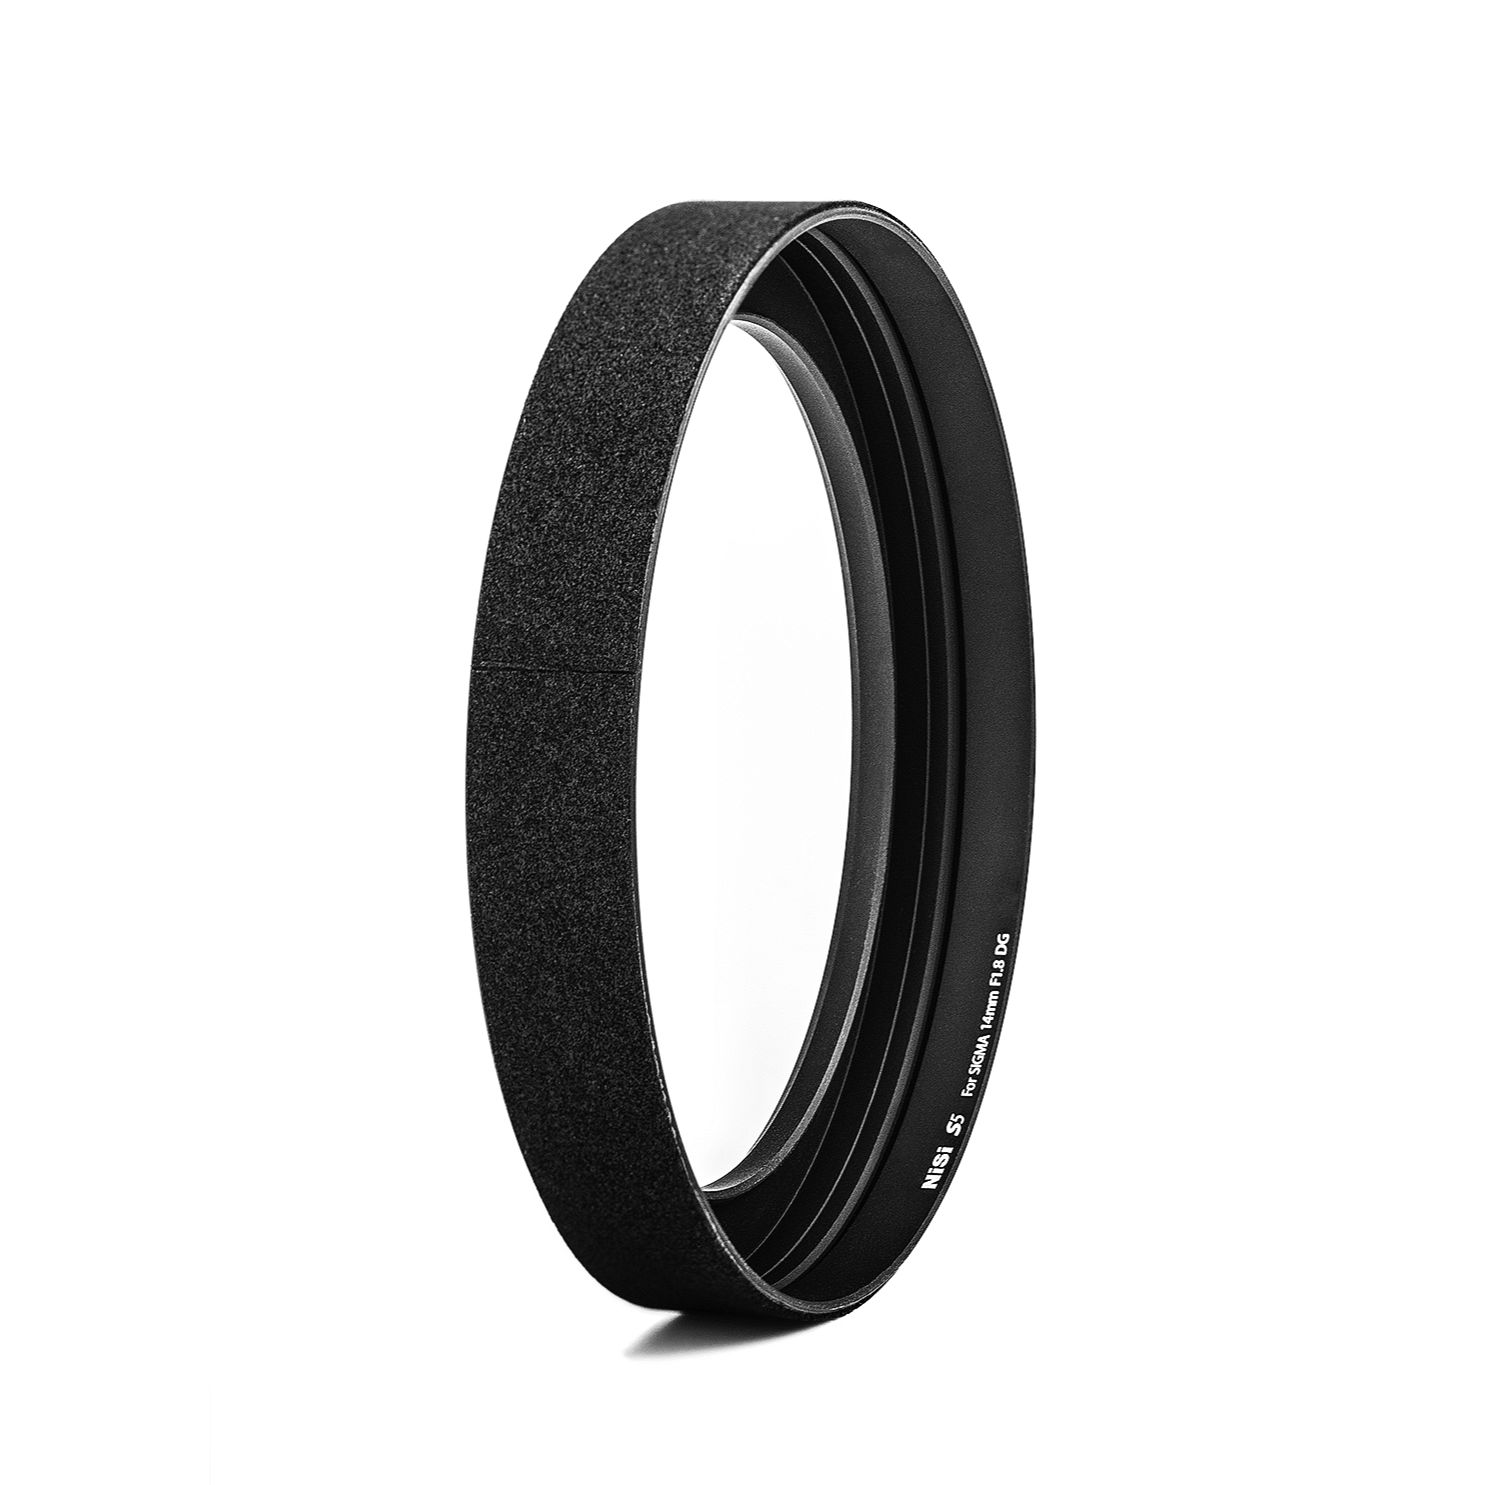 NiSi 77mm Adaptor Ring for S5 Sigma 14mm f1.8